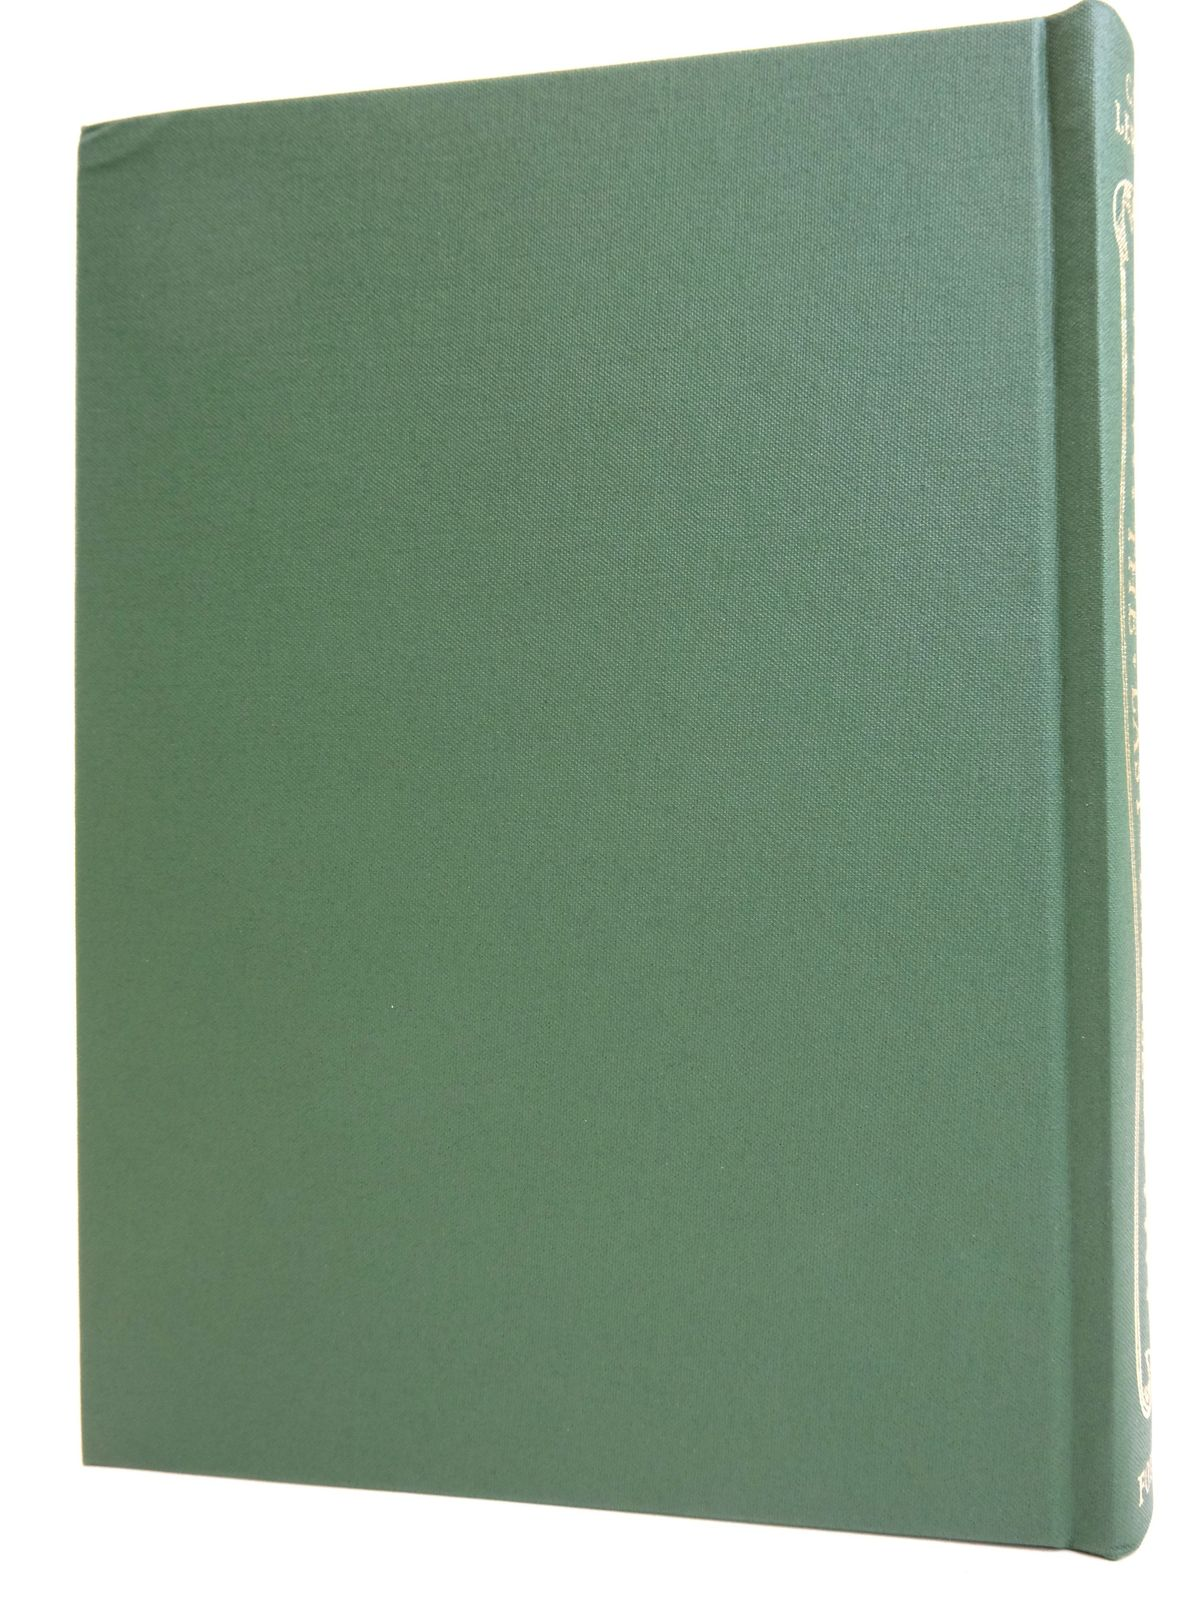 Photo of THE CHRONICLES OF NARNIA (7 VOLUMES) written by Lewis, C.S. illustrated by Baynes, Pauline published by Folio Society (STOCK CODE: 1819238)  for sale by Stella & Rose's Books